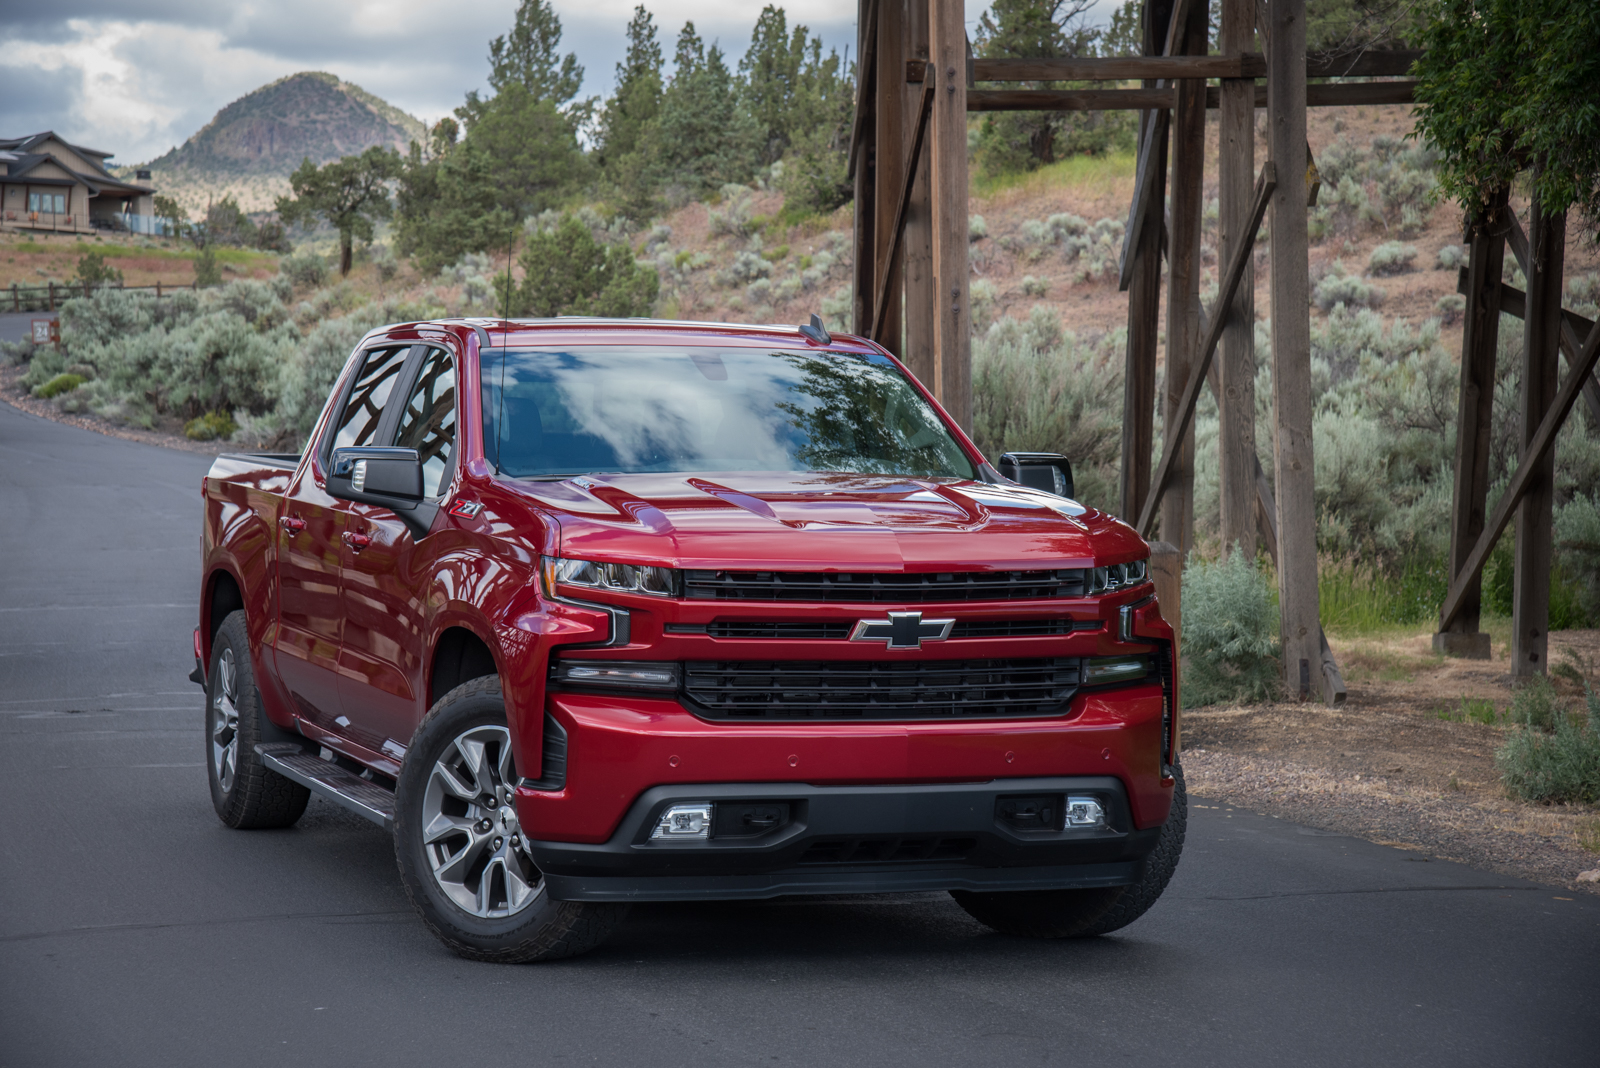 2020 Silverado 1500 Diesel Reviews